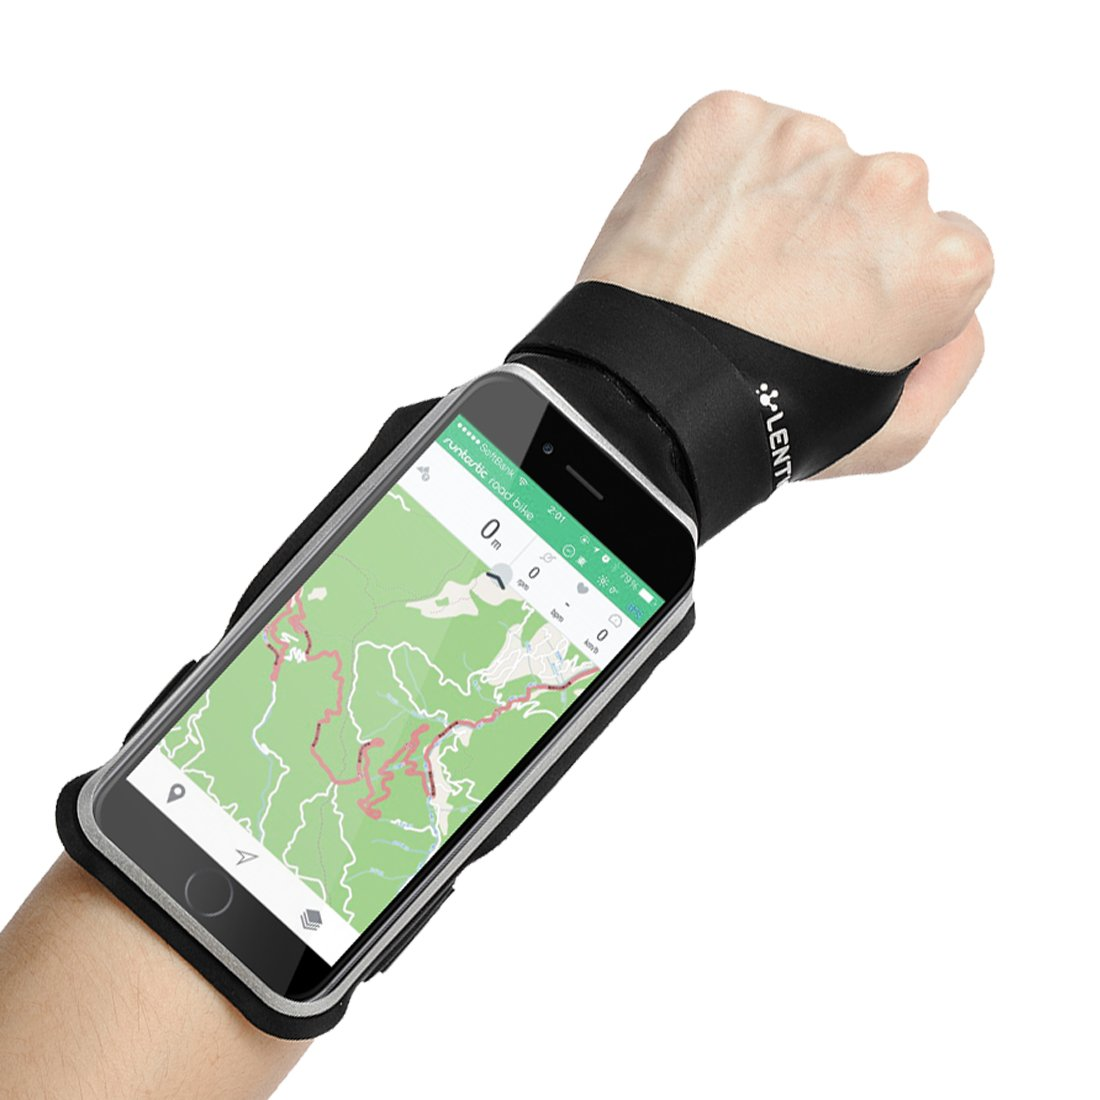 LENTION iPhone 8 / 7 / 6s / 6 Touch Screen Forearm Band, Wristband, Running Armband with Key ID Cash Holder for Cycling, Jogging, Exercise, Sports (for Phones from 4.0''- 5.0'')